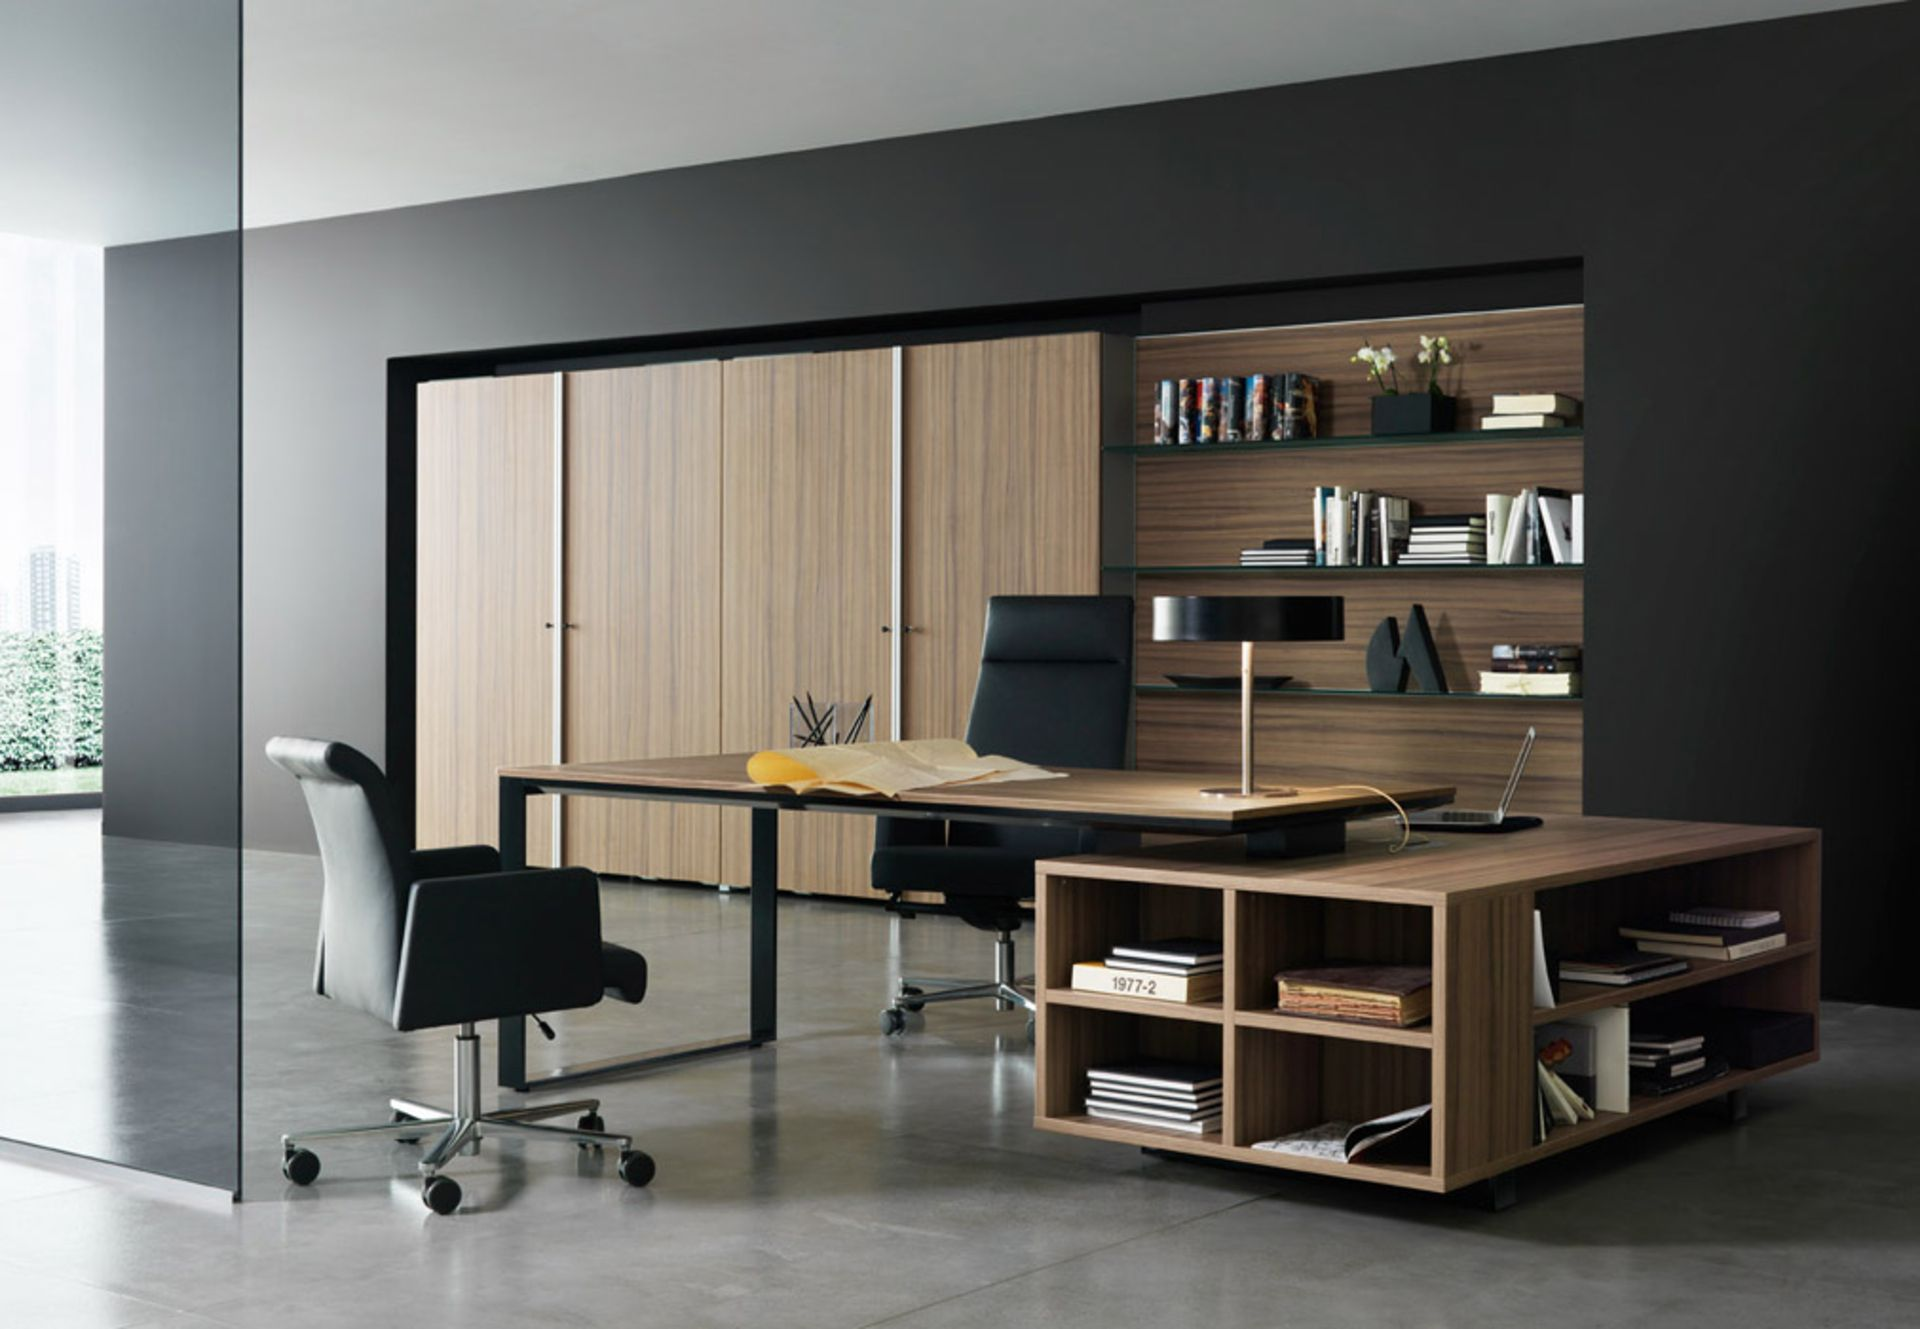 Office Interior Design Ideas office cabin ideaselevation .. we are interior designers in